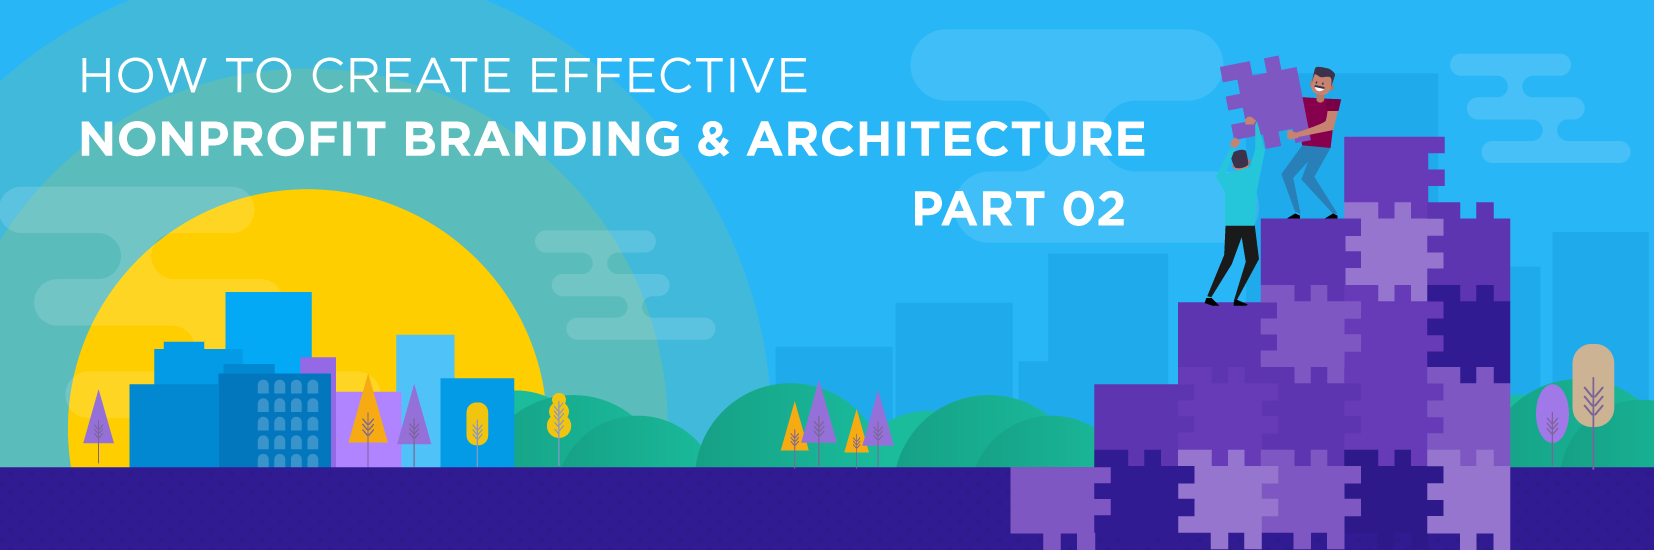 How to create an effective nonprofit branding architecture- Part 2